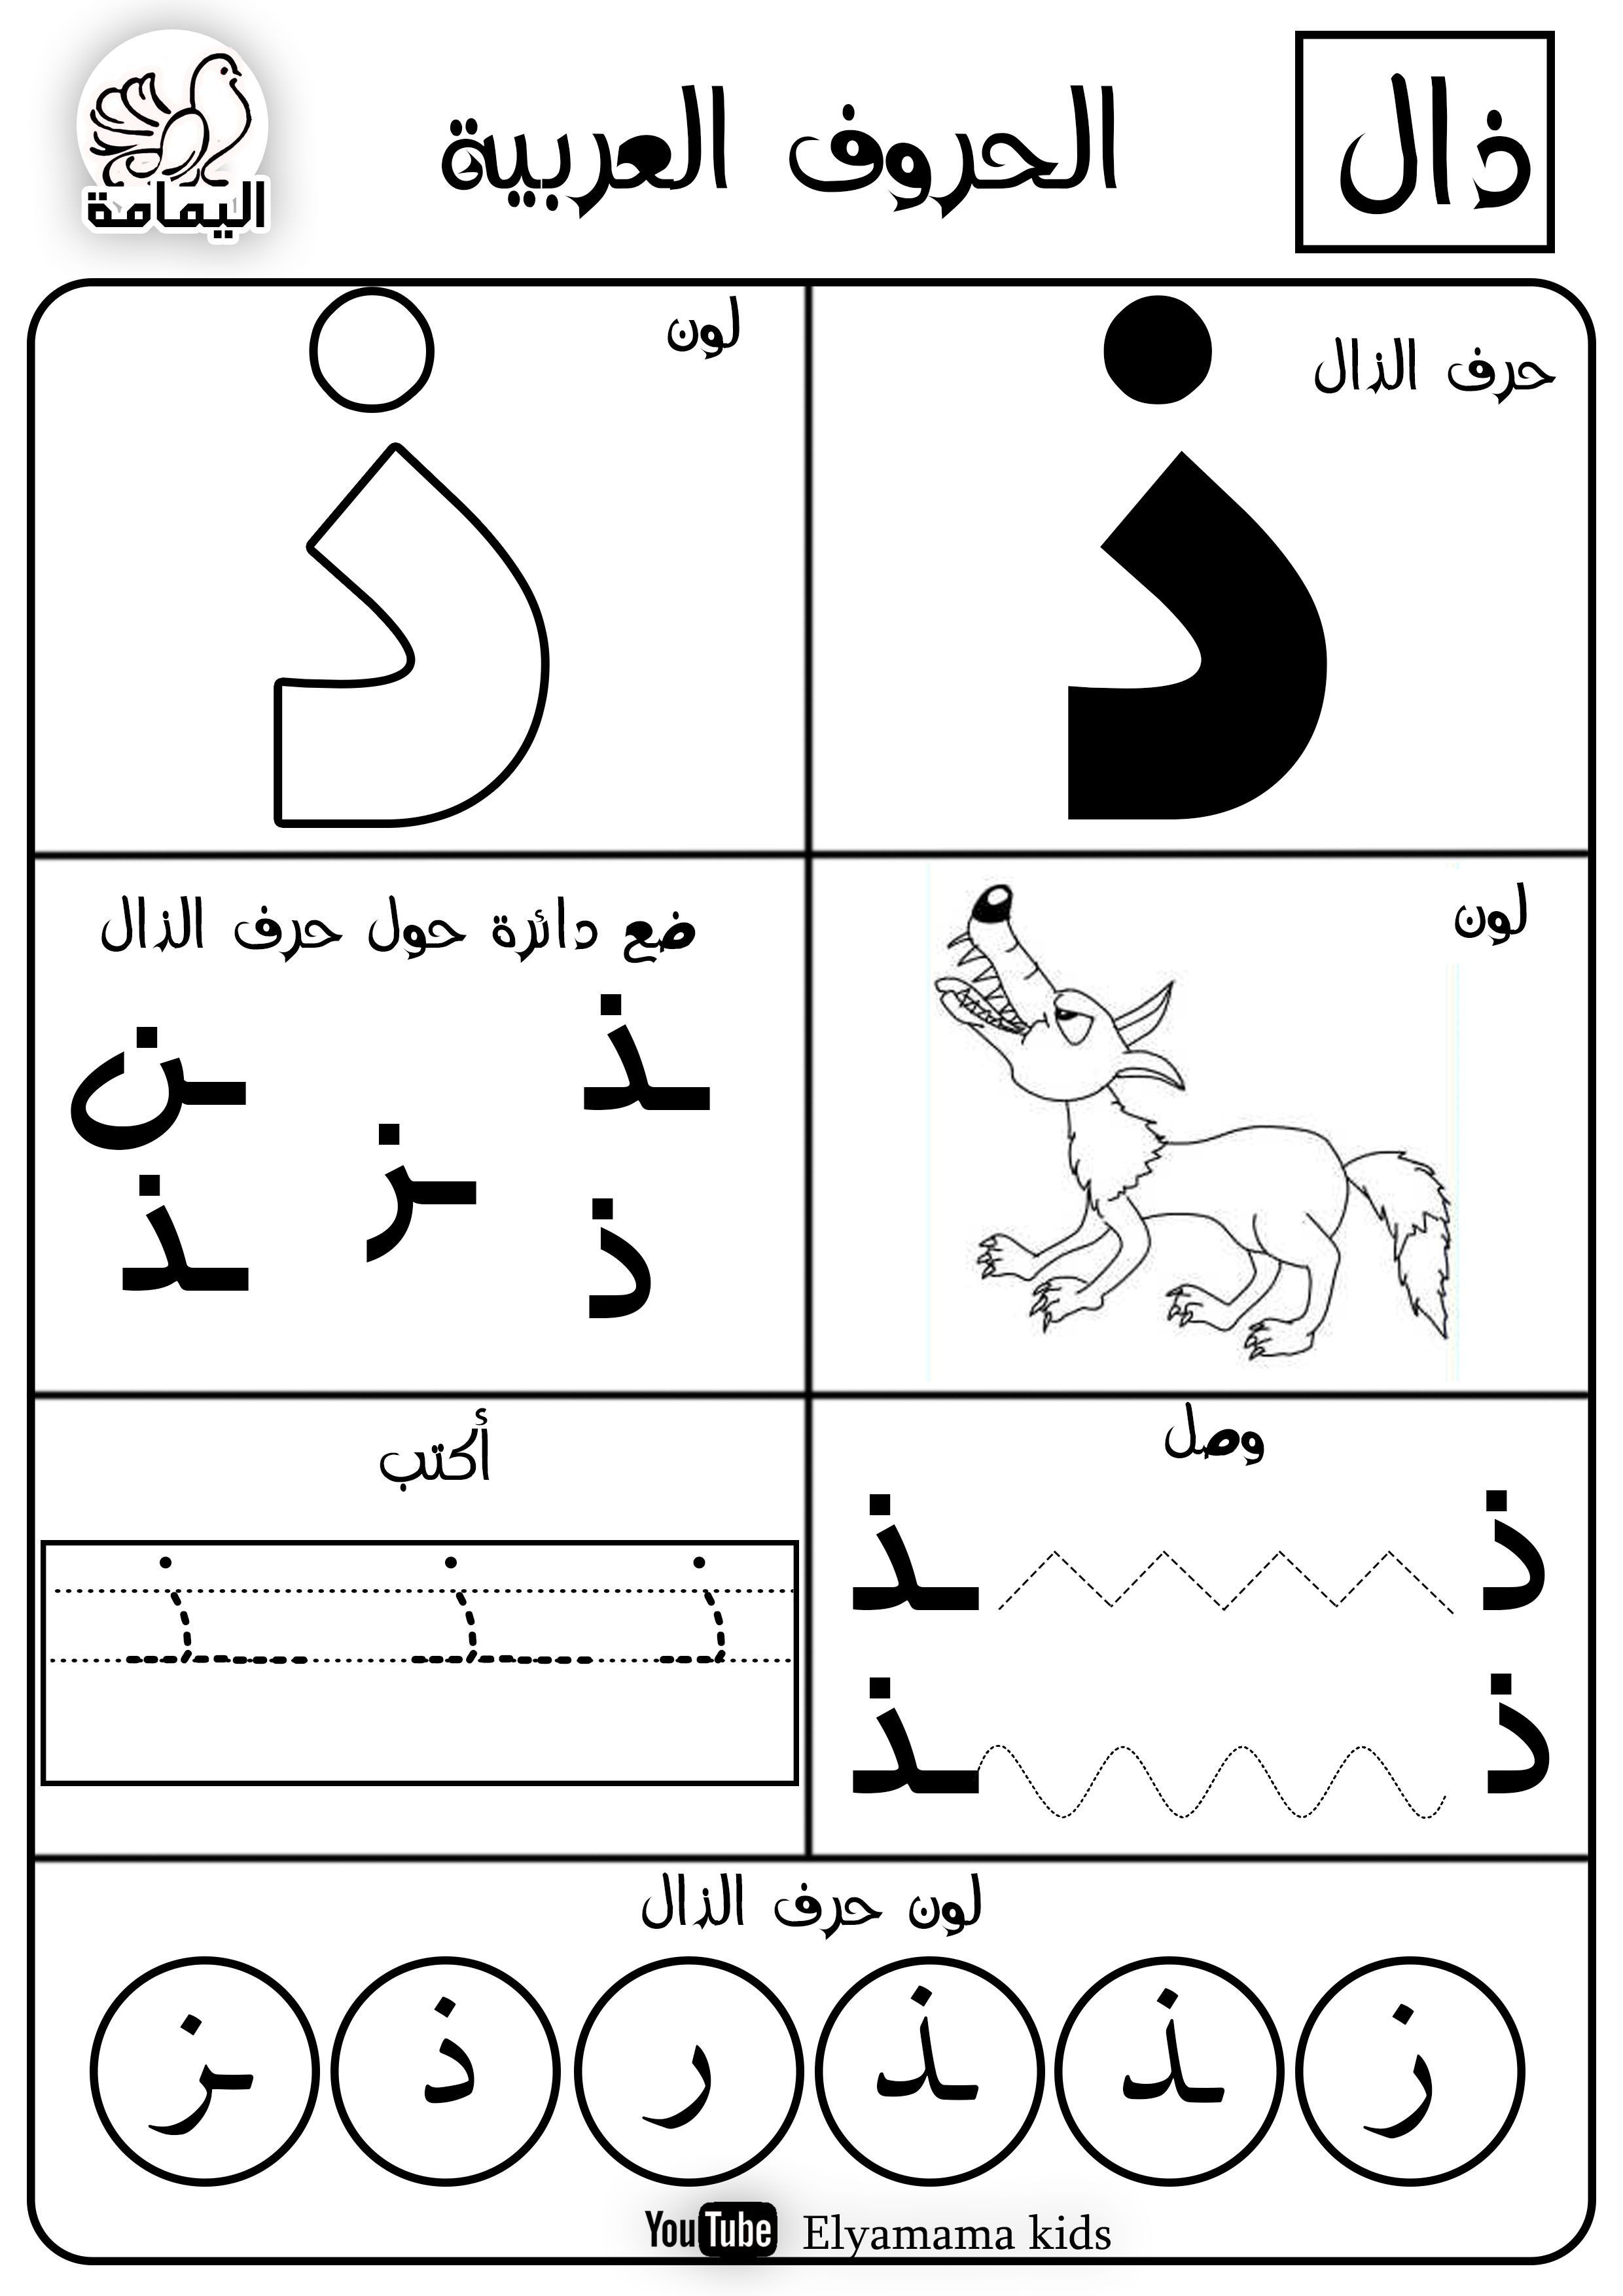 Pin By Mona Mahmoud On Arabic Lessons For Children Arabic Alphabet Learn Arabic Alphabet Arabic Alphabet Letters